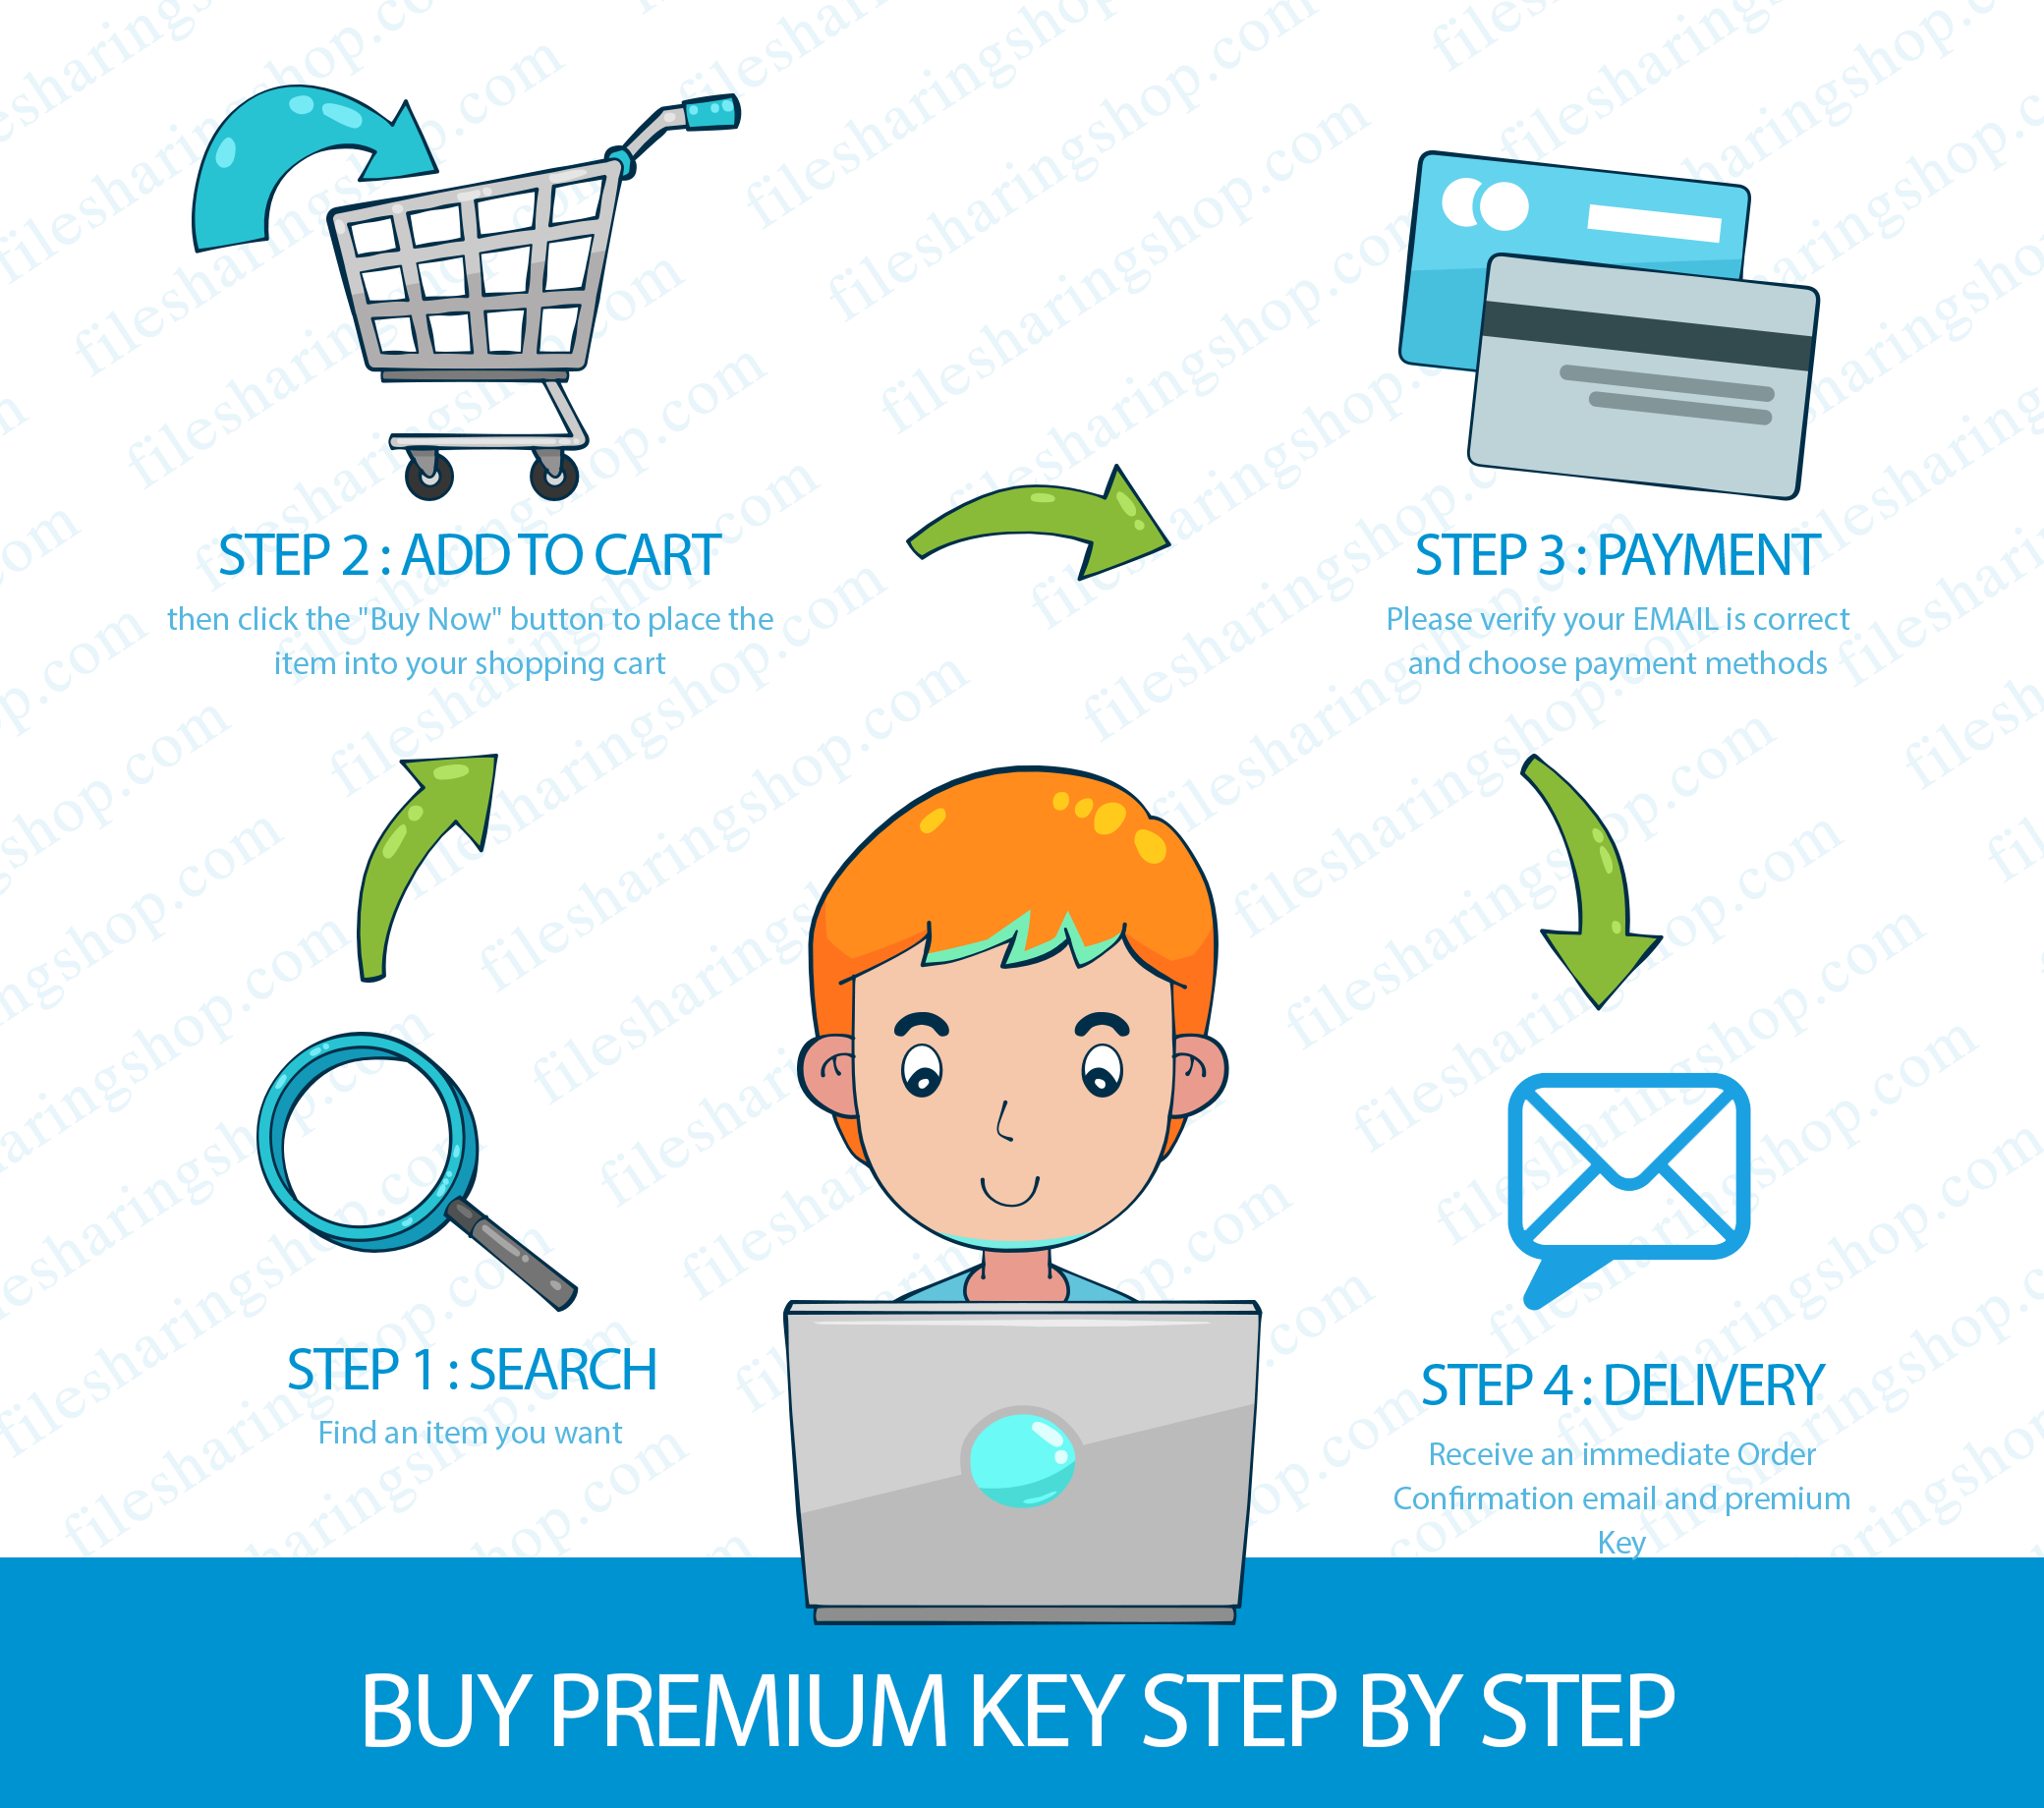 HOW TO BUY DATAFILE PREMIUM